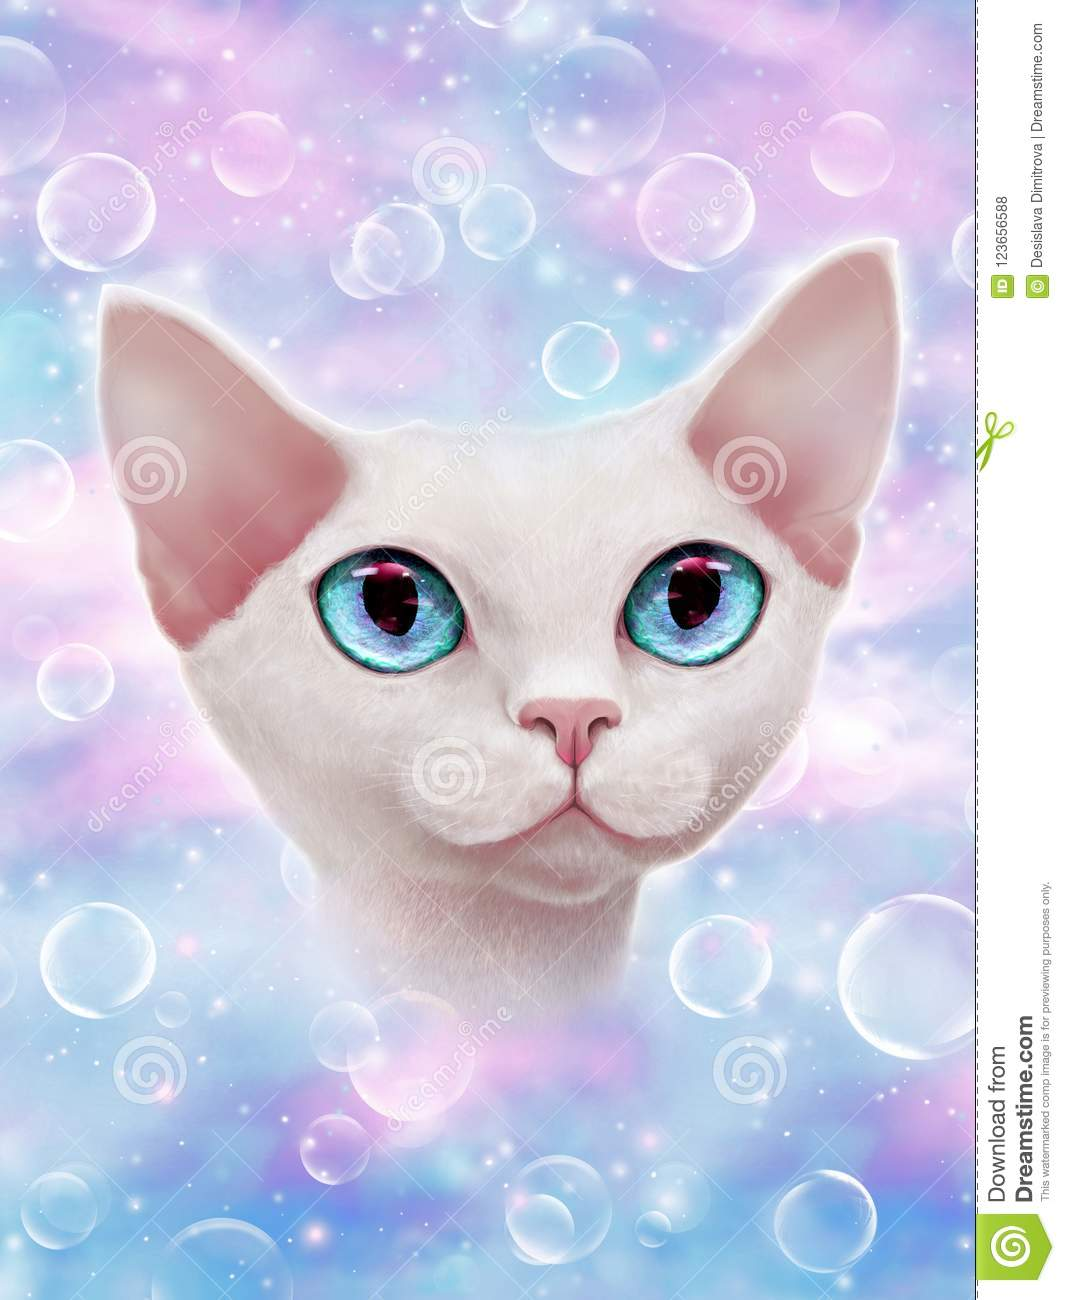 How to increase your positive vibes? Cosmic universe cat